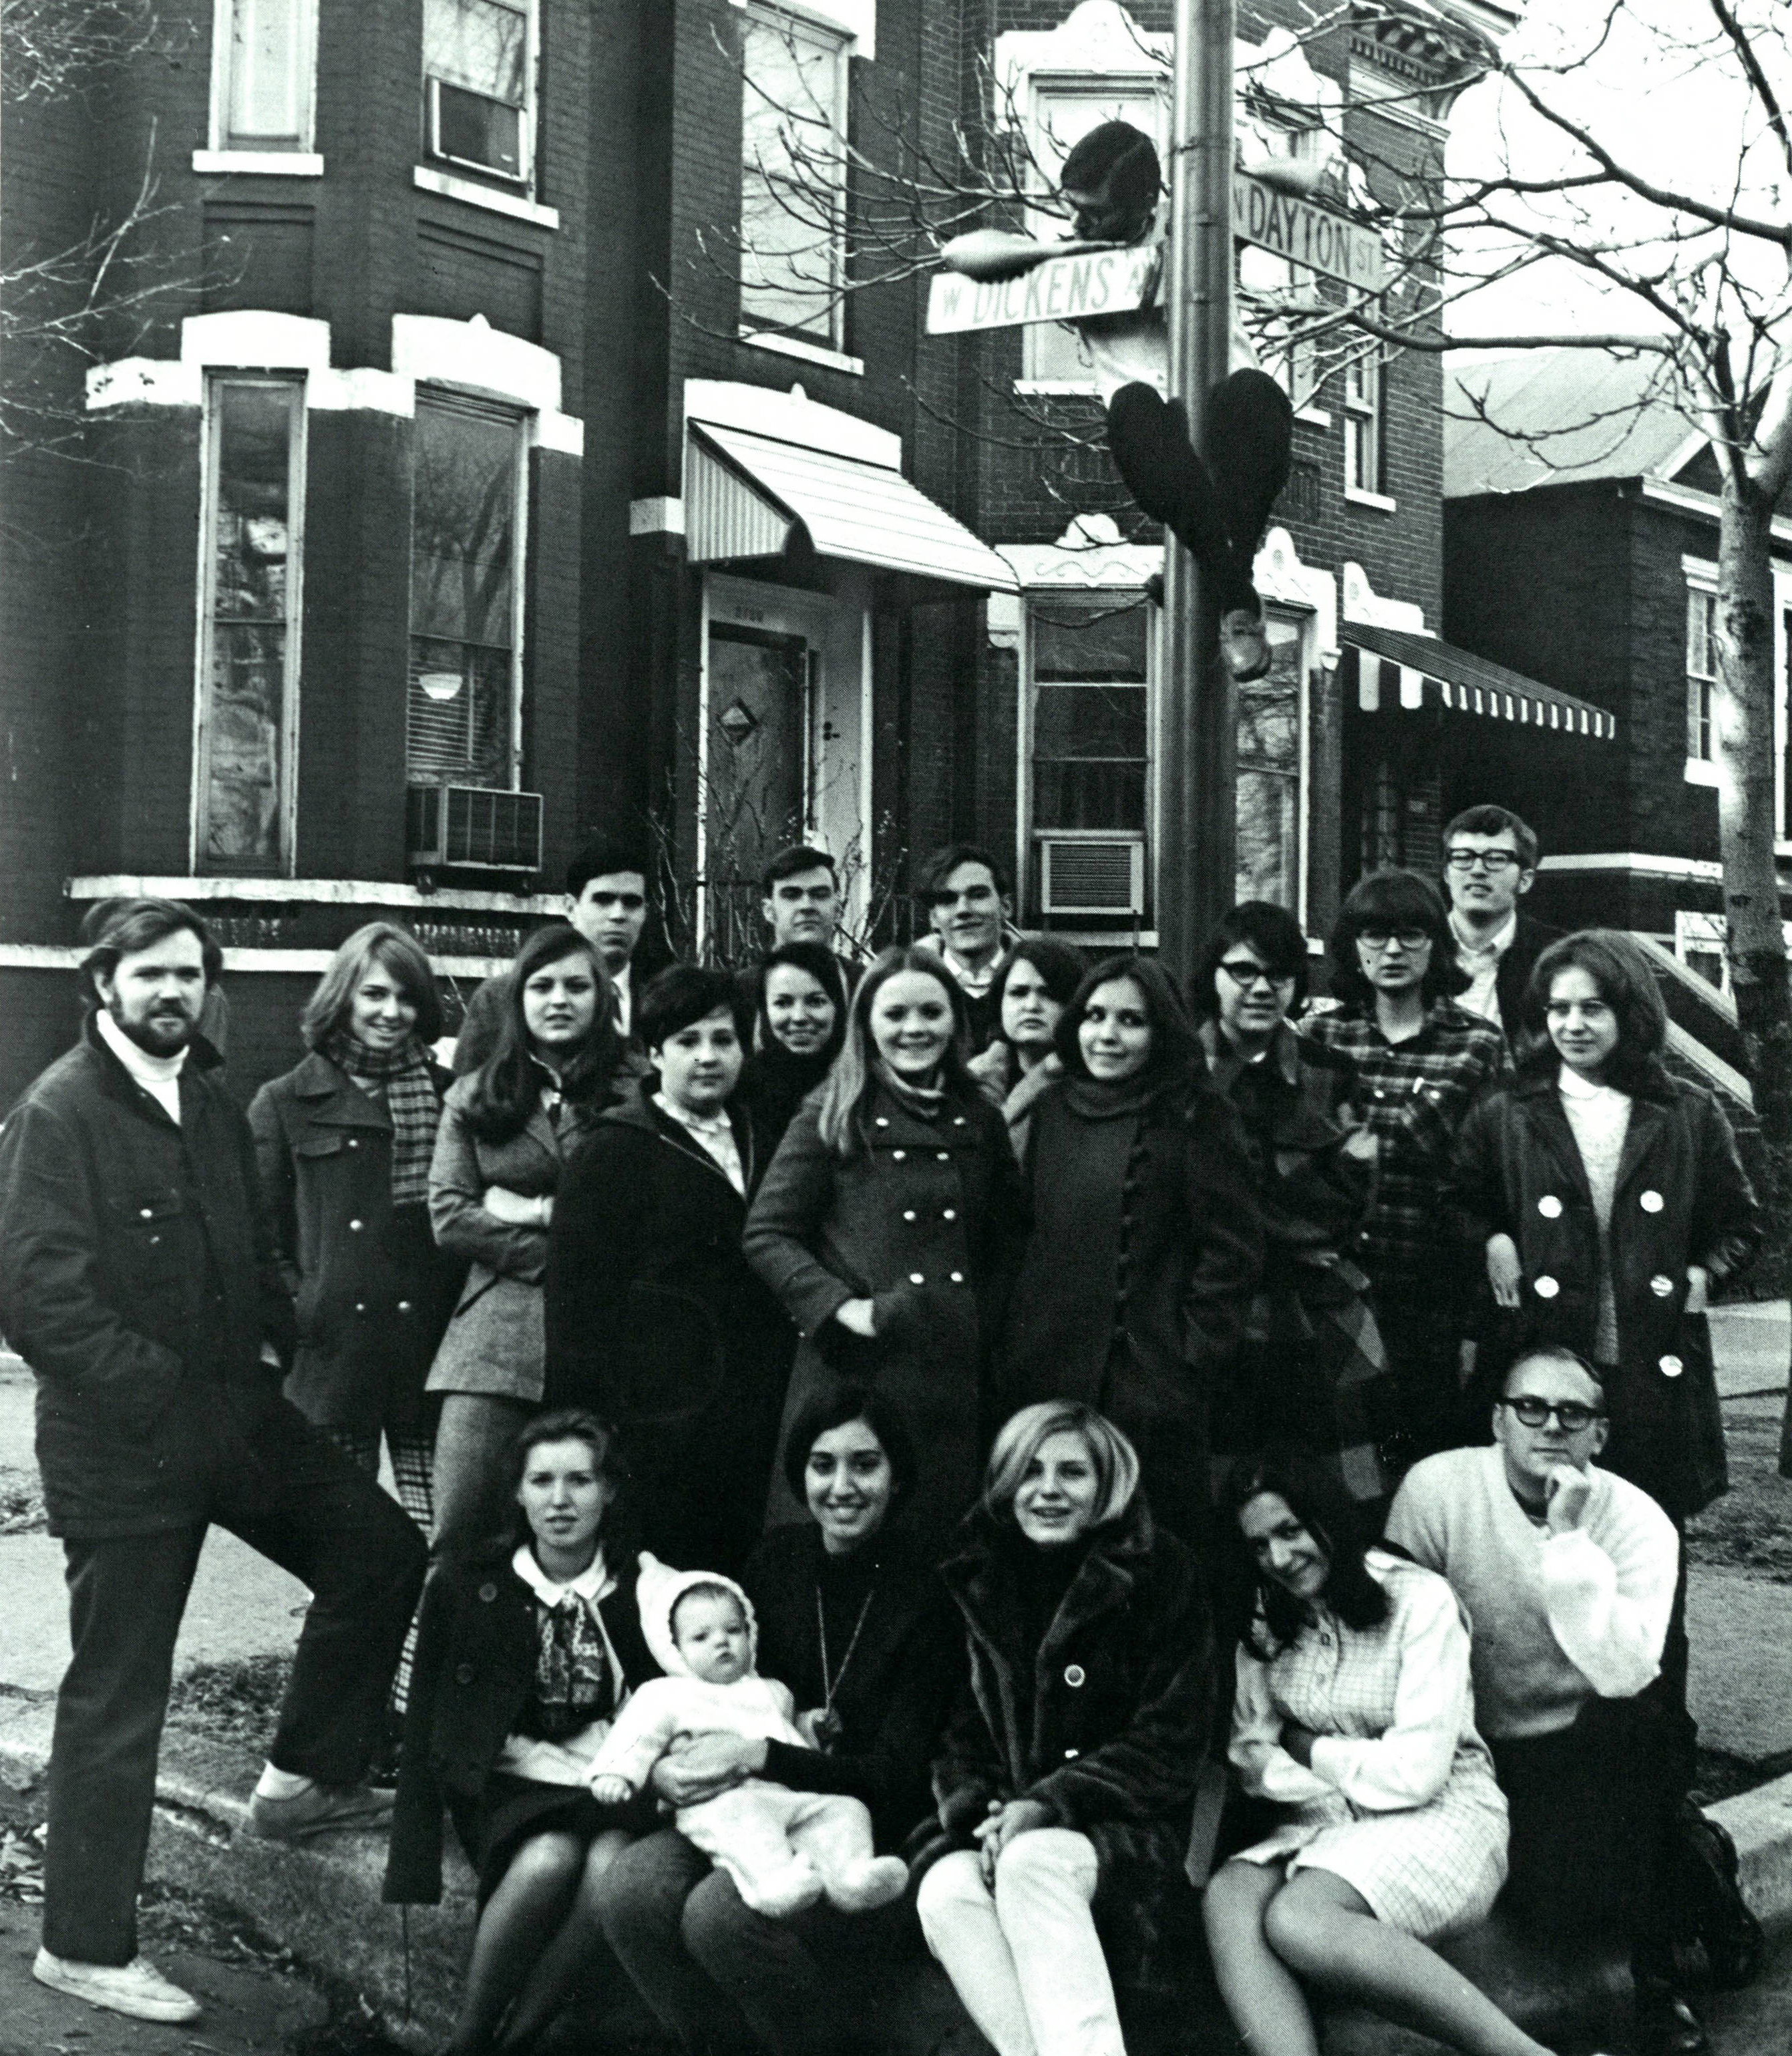 The staff of the Aletheia - 1969 DePaulian (image courtesy of the DePaul Richardson Library Digital Collections)